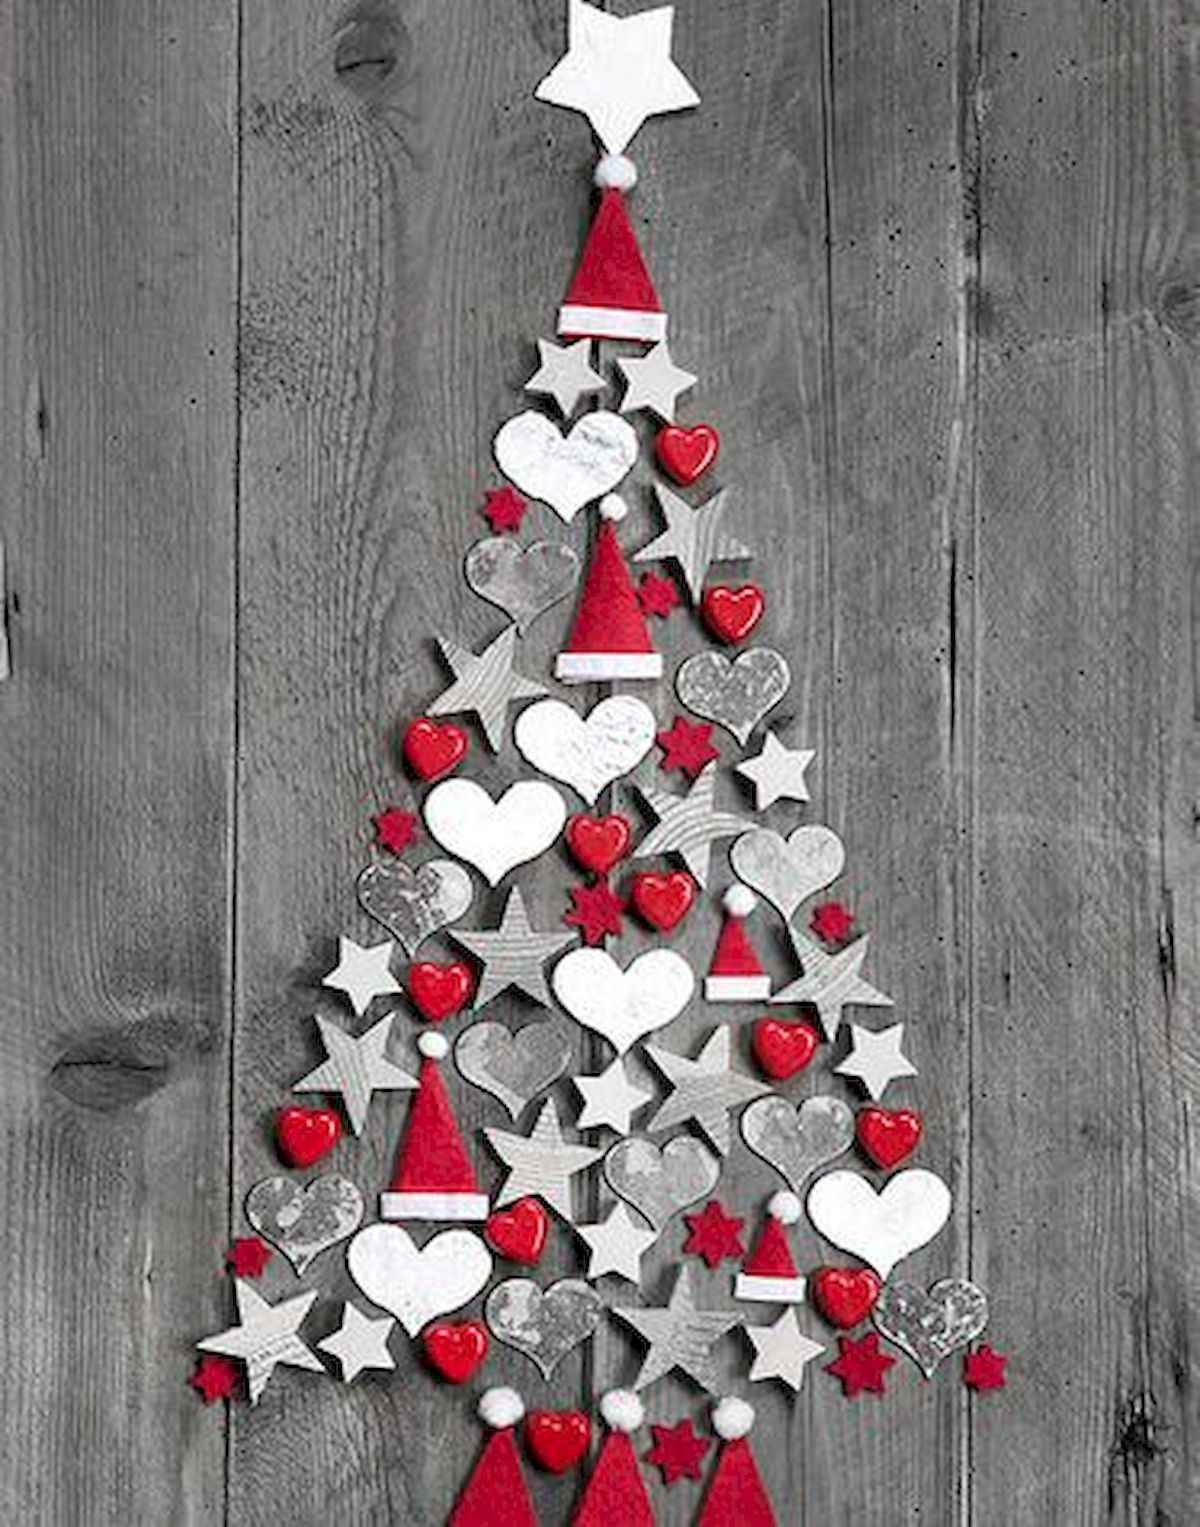 60 awesome wall art christmas ideas decorations (35)